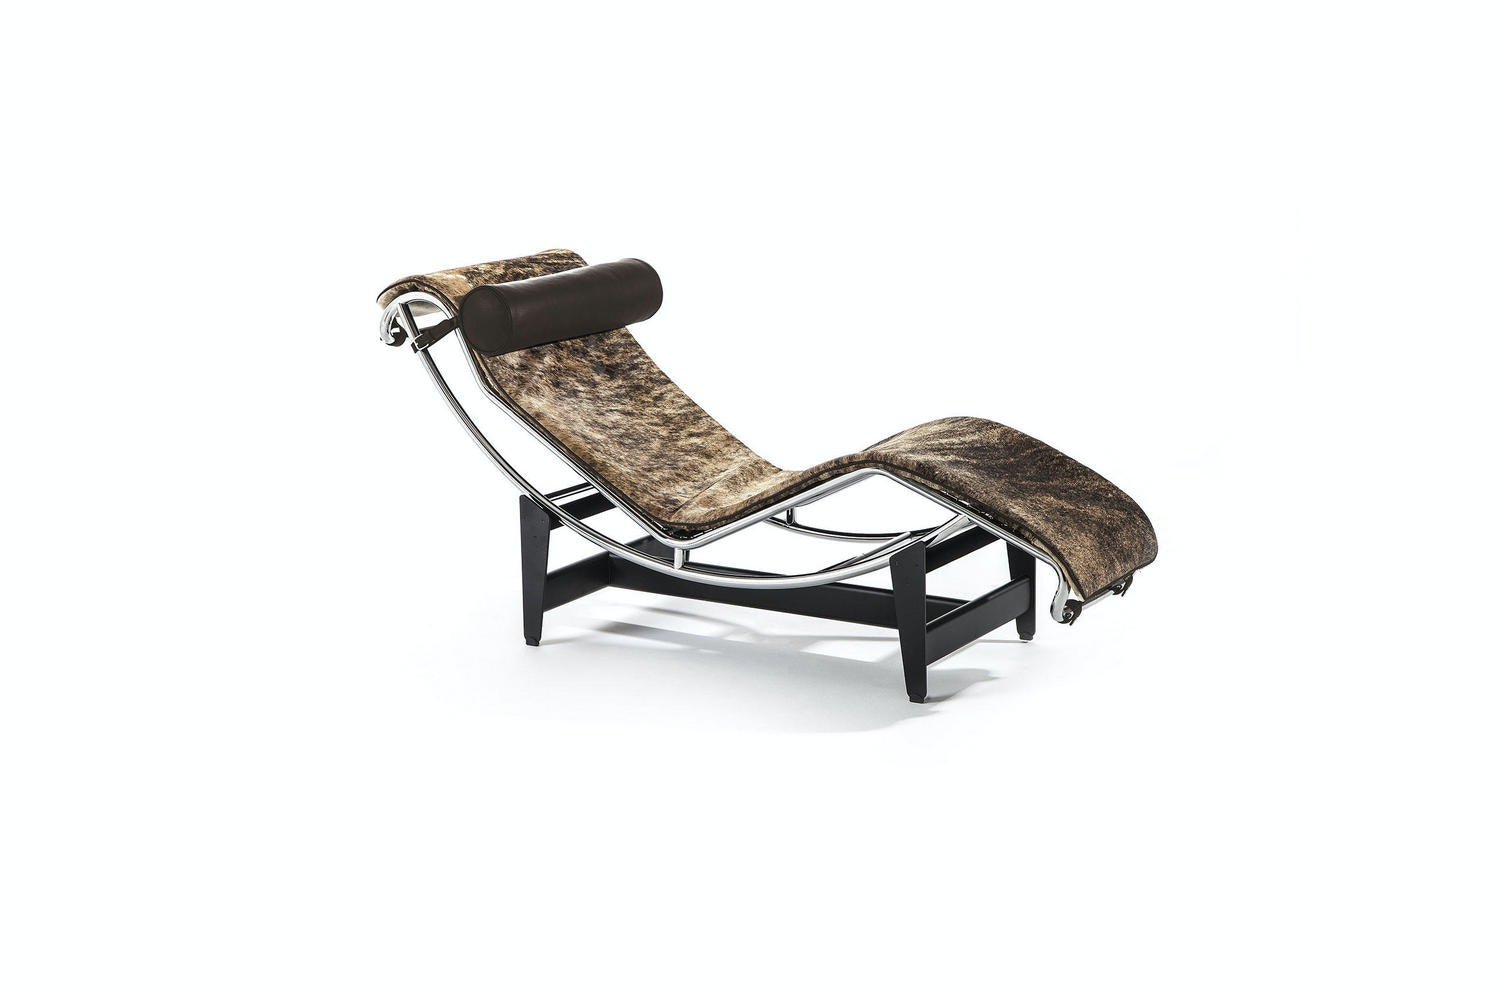 LC4 Pampas Chaise Longue by Le Corbusier, Pierre Jeanneret, Charlotte Perriand for Cassina